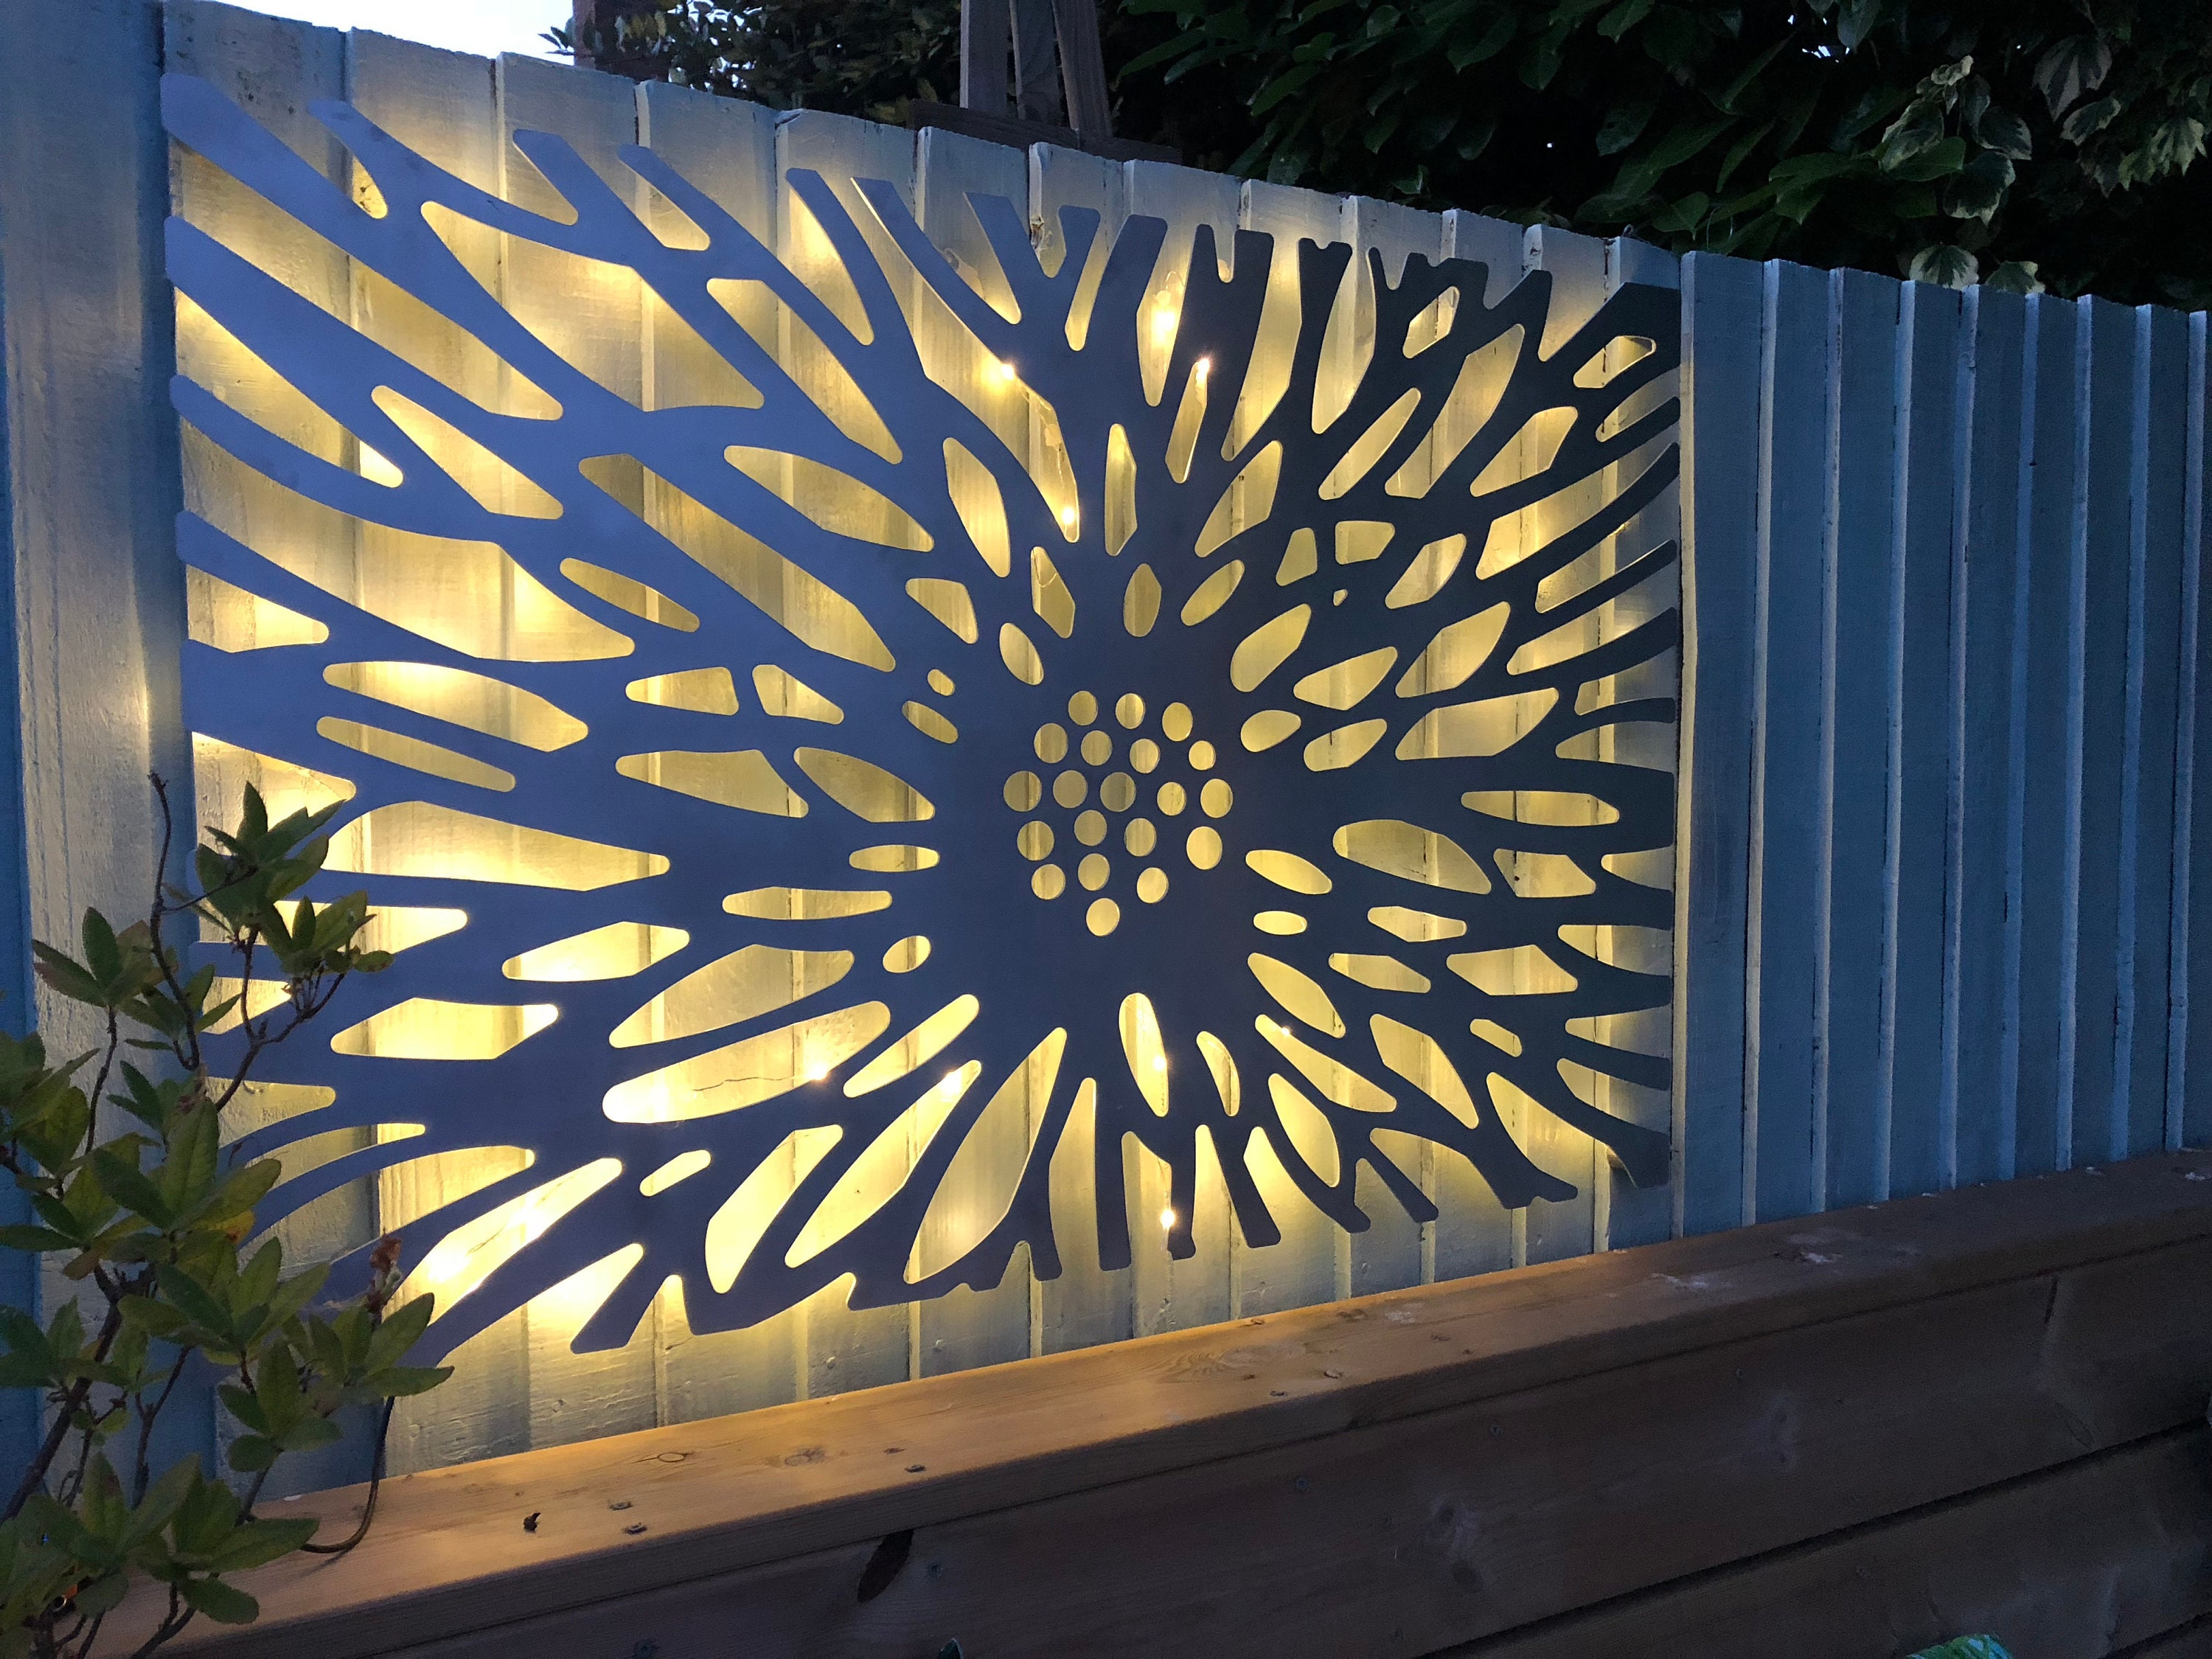 Laser Cut Decorative Metal Wall Art Panel Sculpture for with